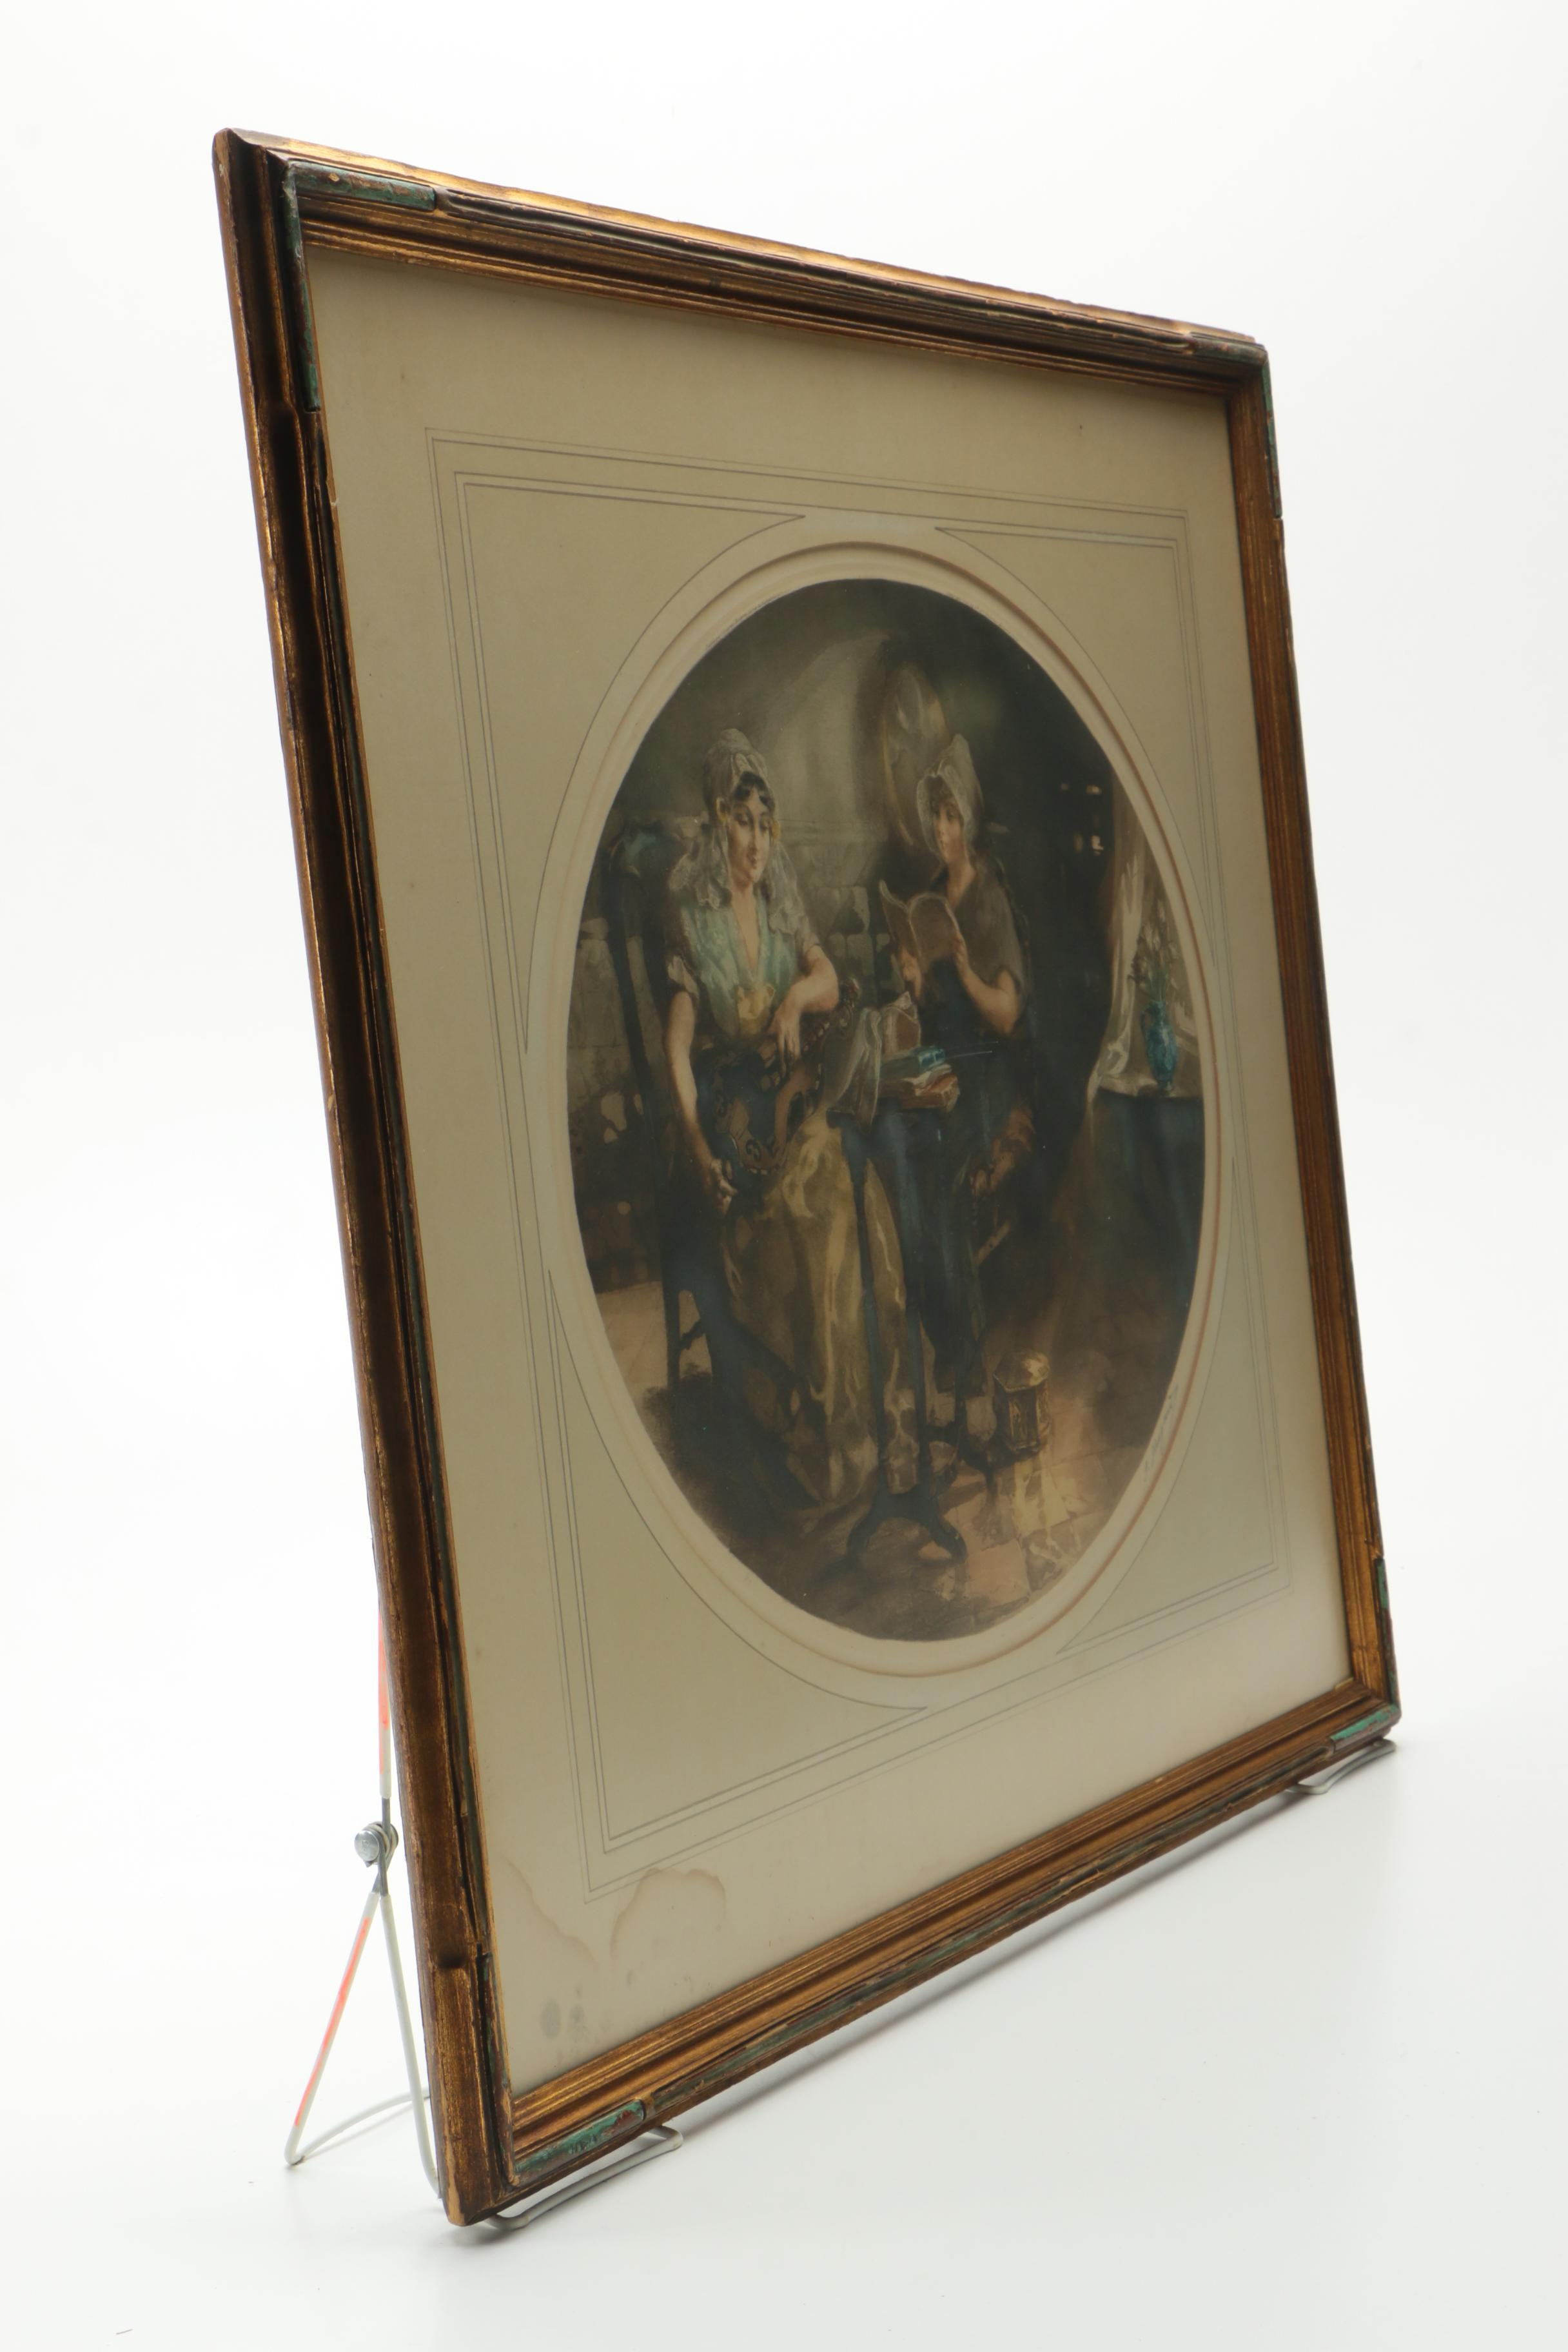 Hugard Hand Colored Intaglio Of Women At Leisure Ebth